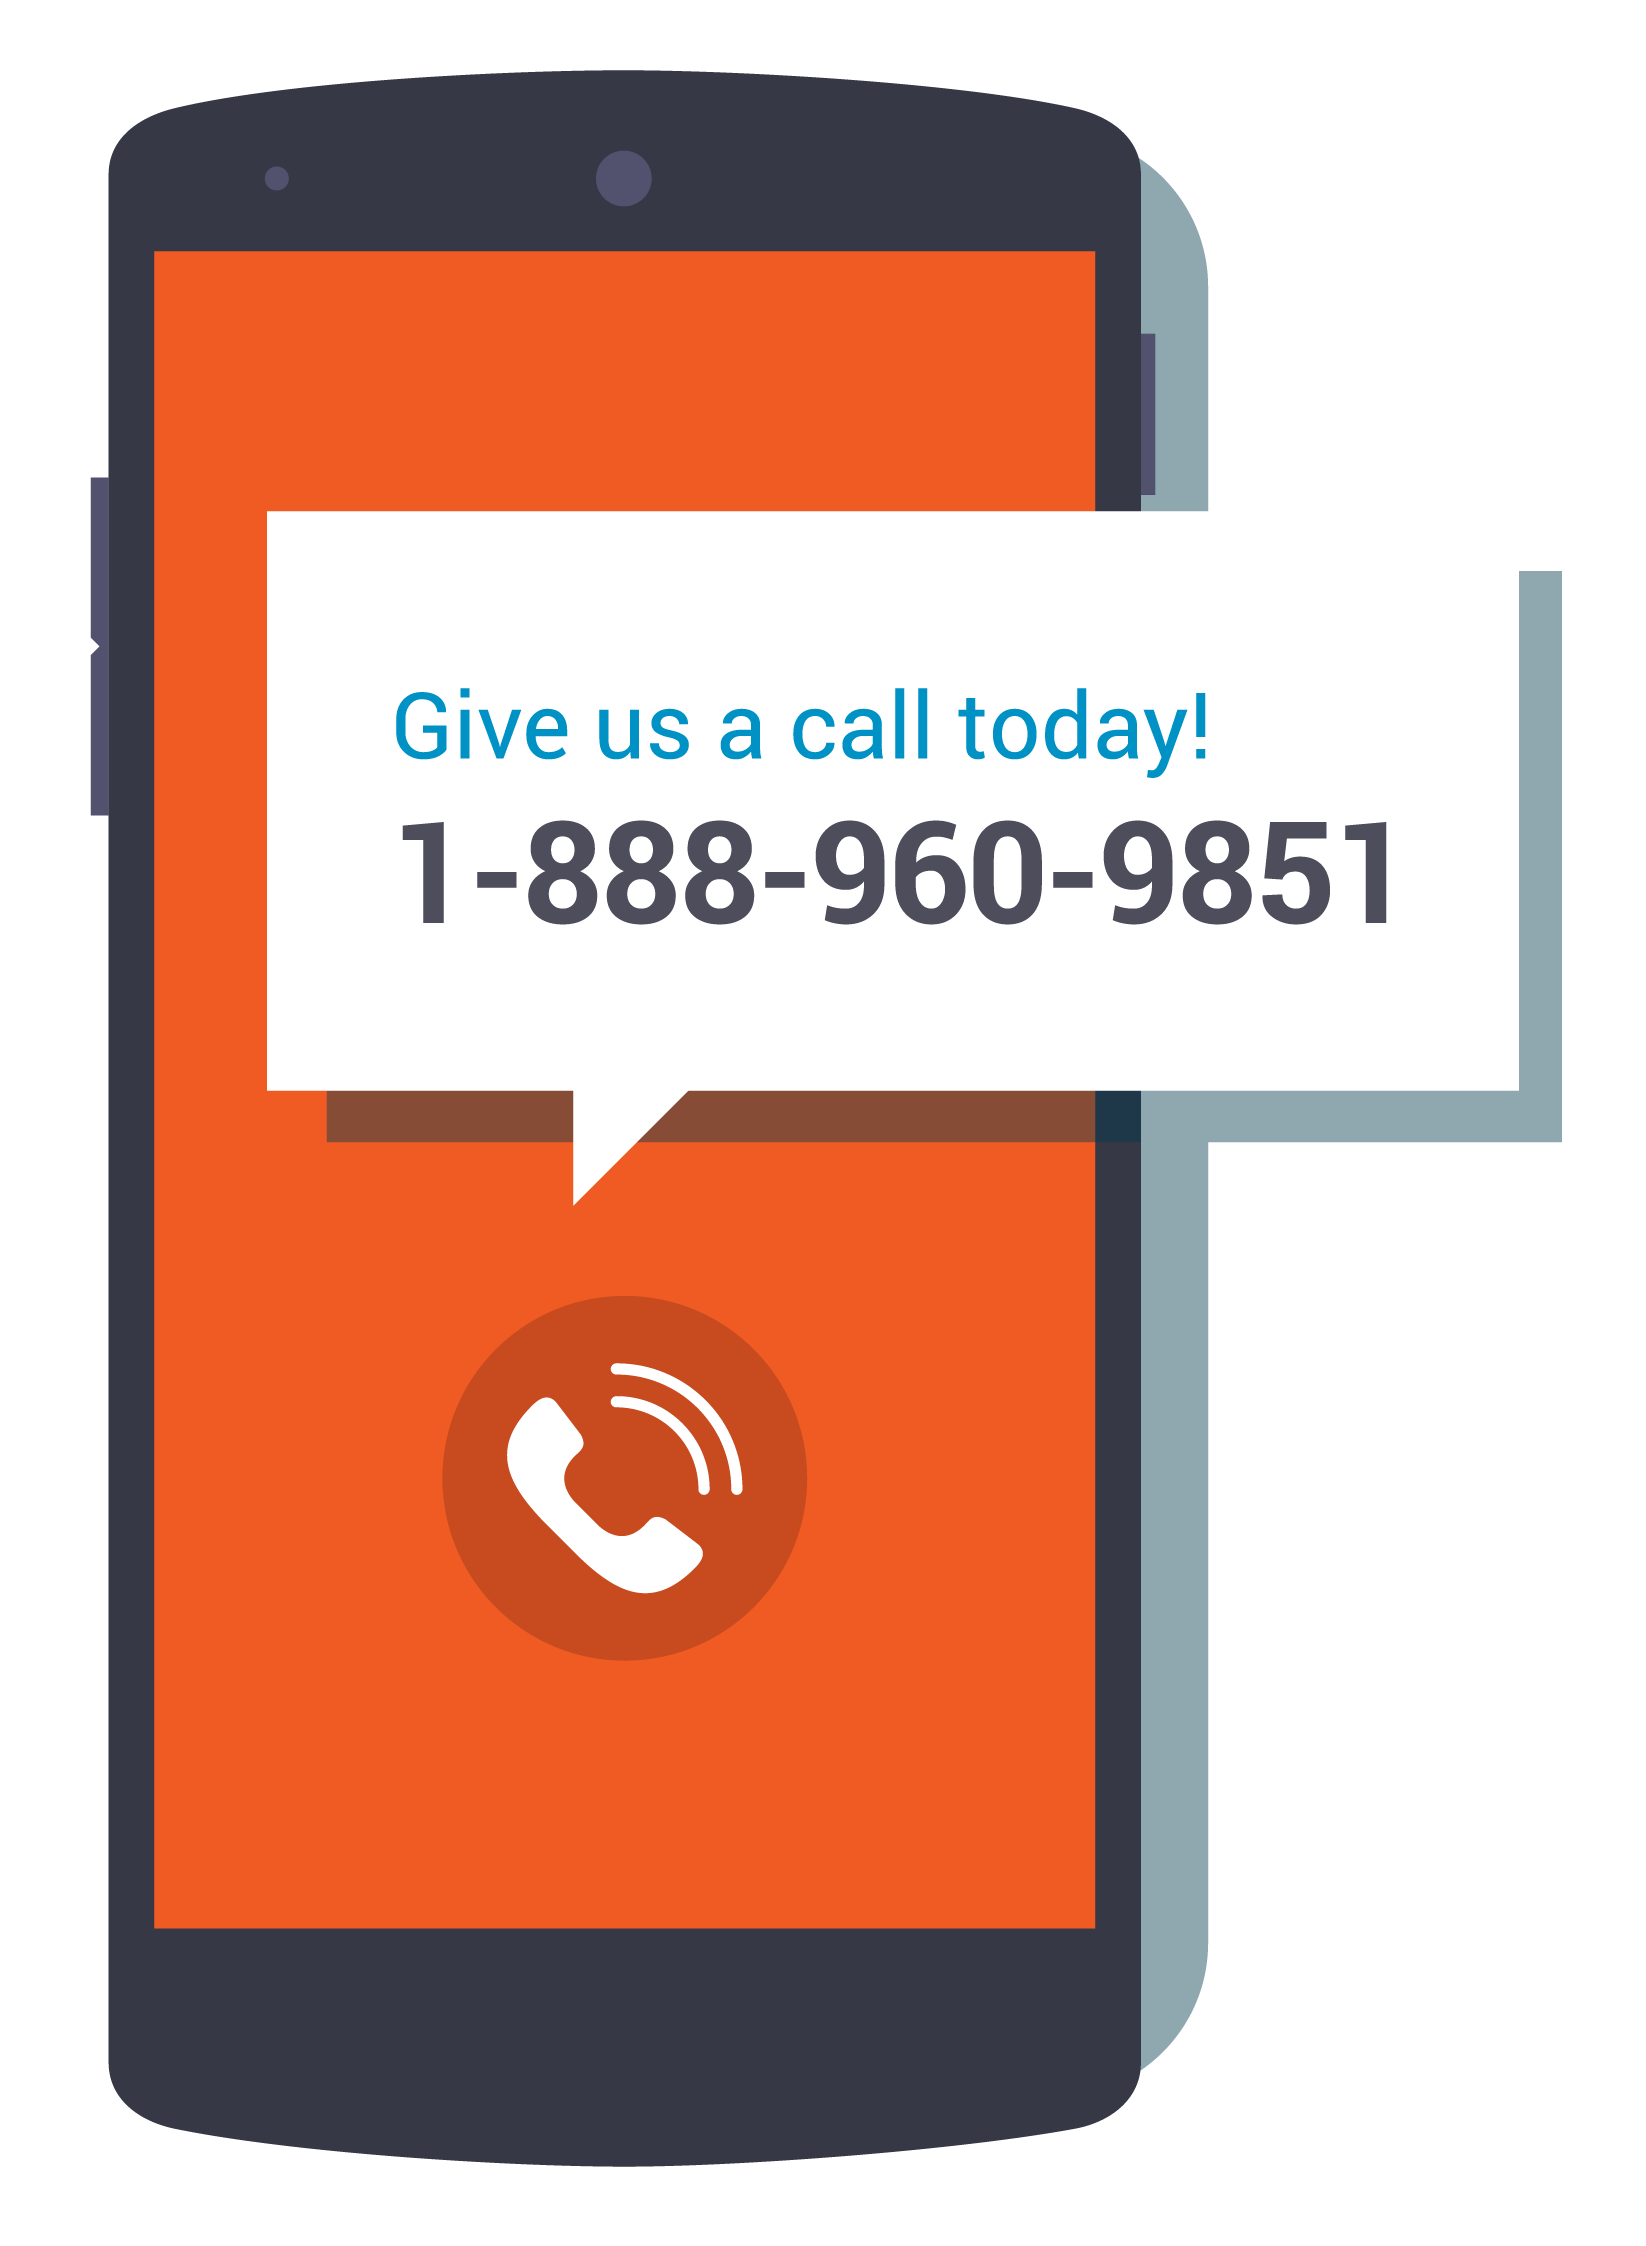 graphic of a mobile phone with text: give us a call today! 1-888-960-9851